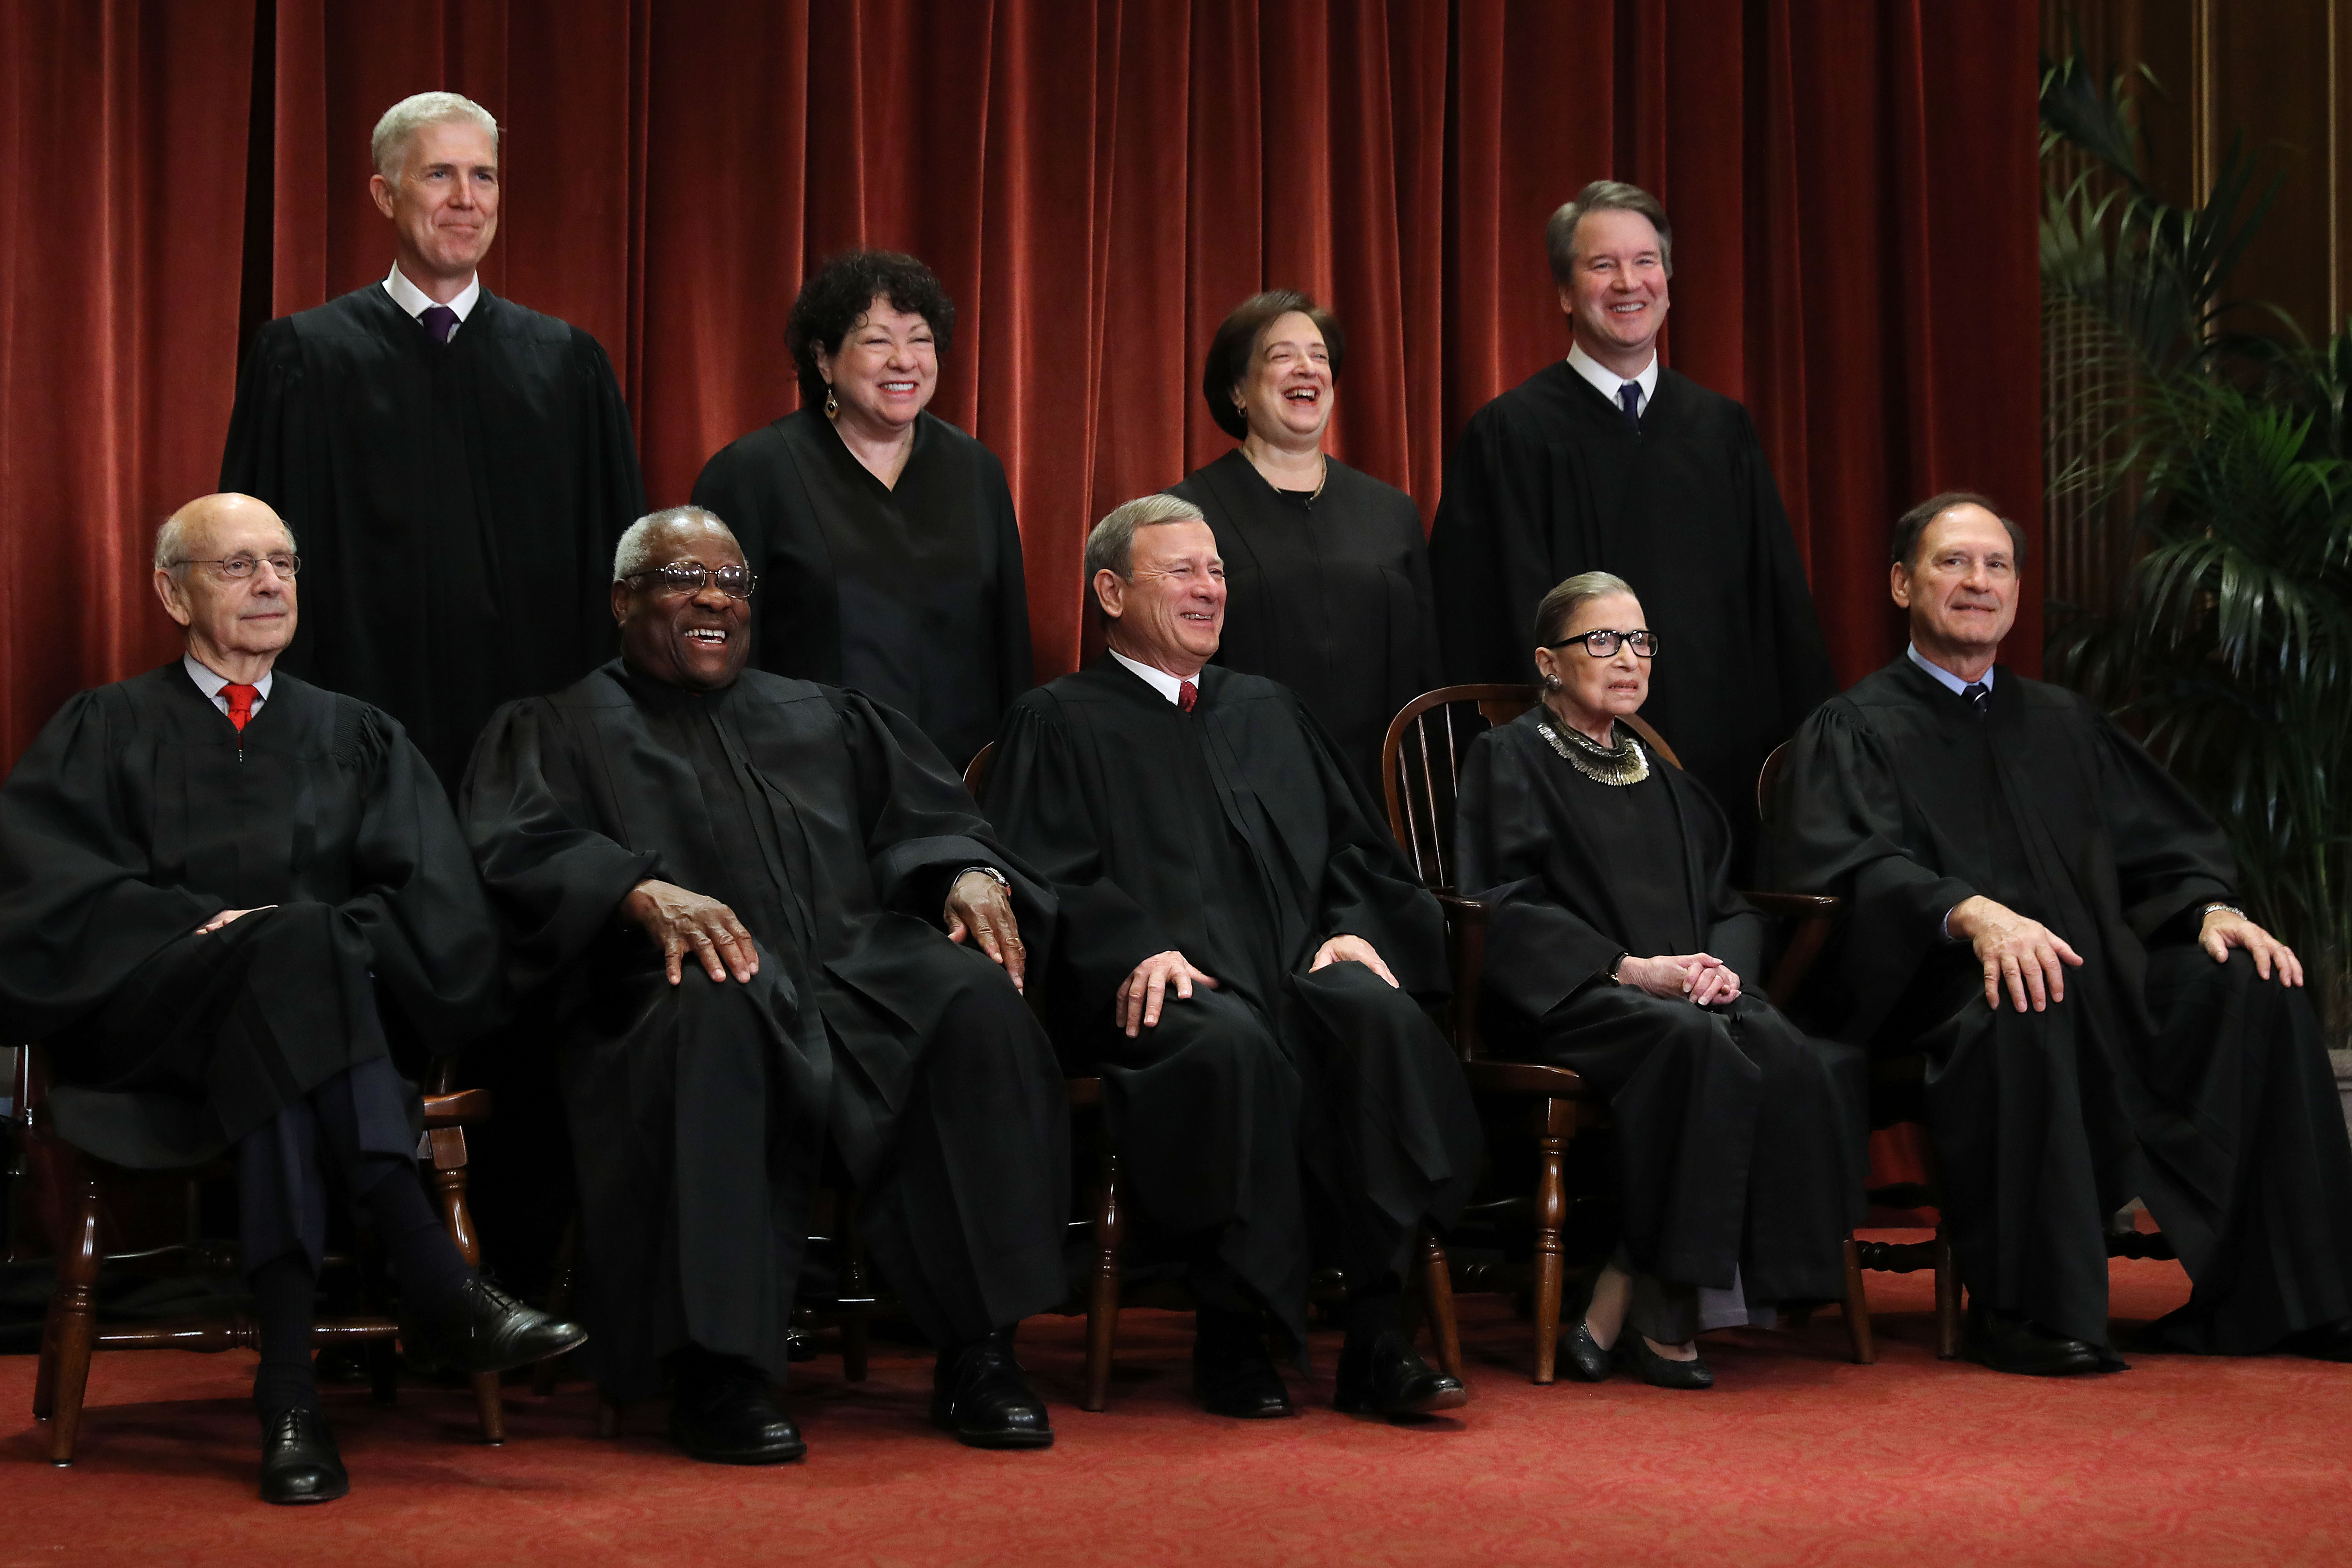 The justices of the Supreme Court pose for their official portrait on November 30, 2018. (Chip Somodevilla/Getty Images)